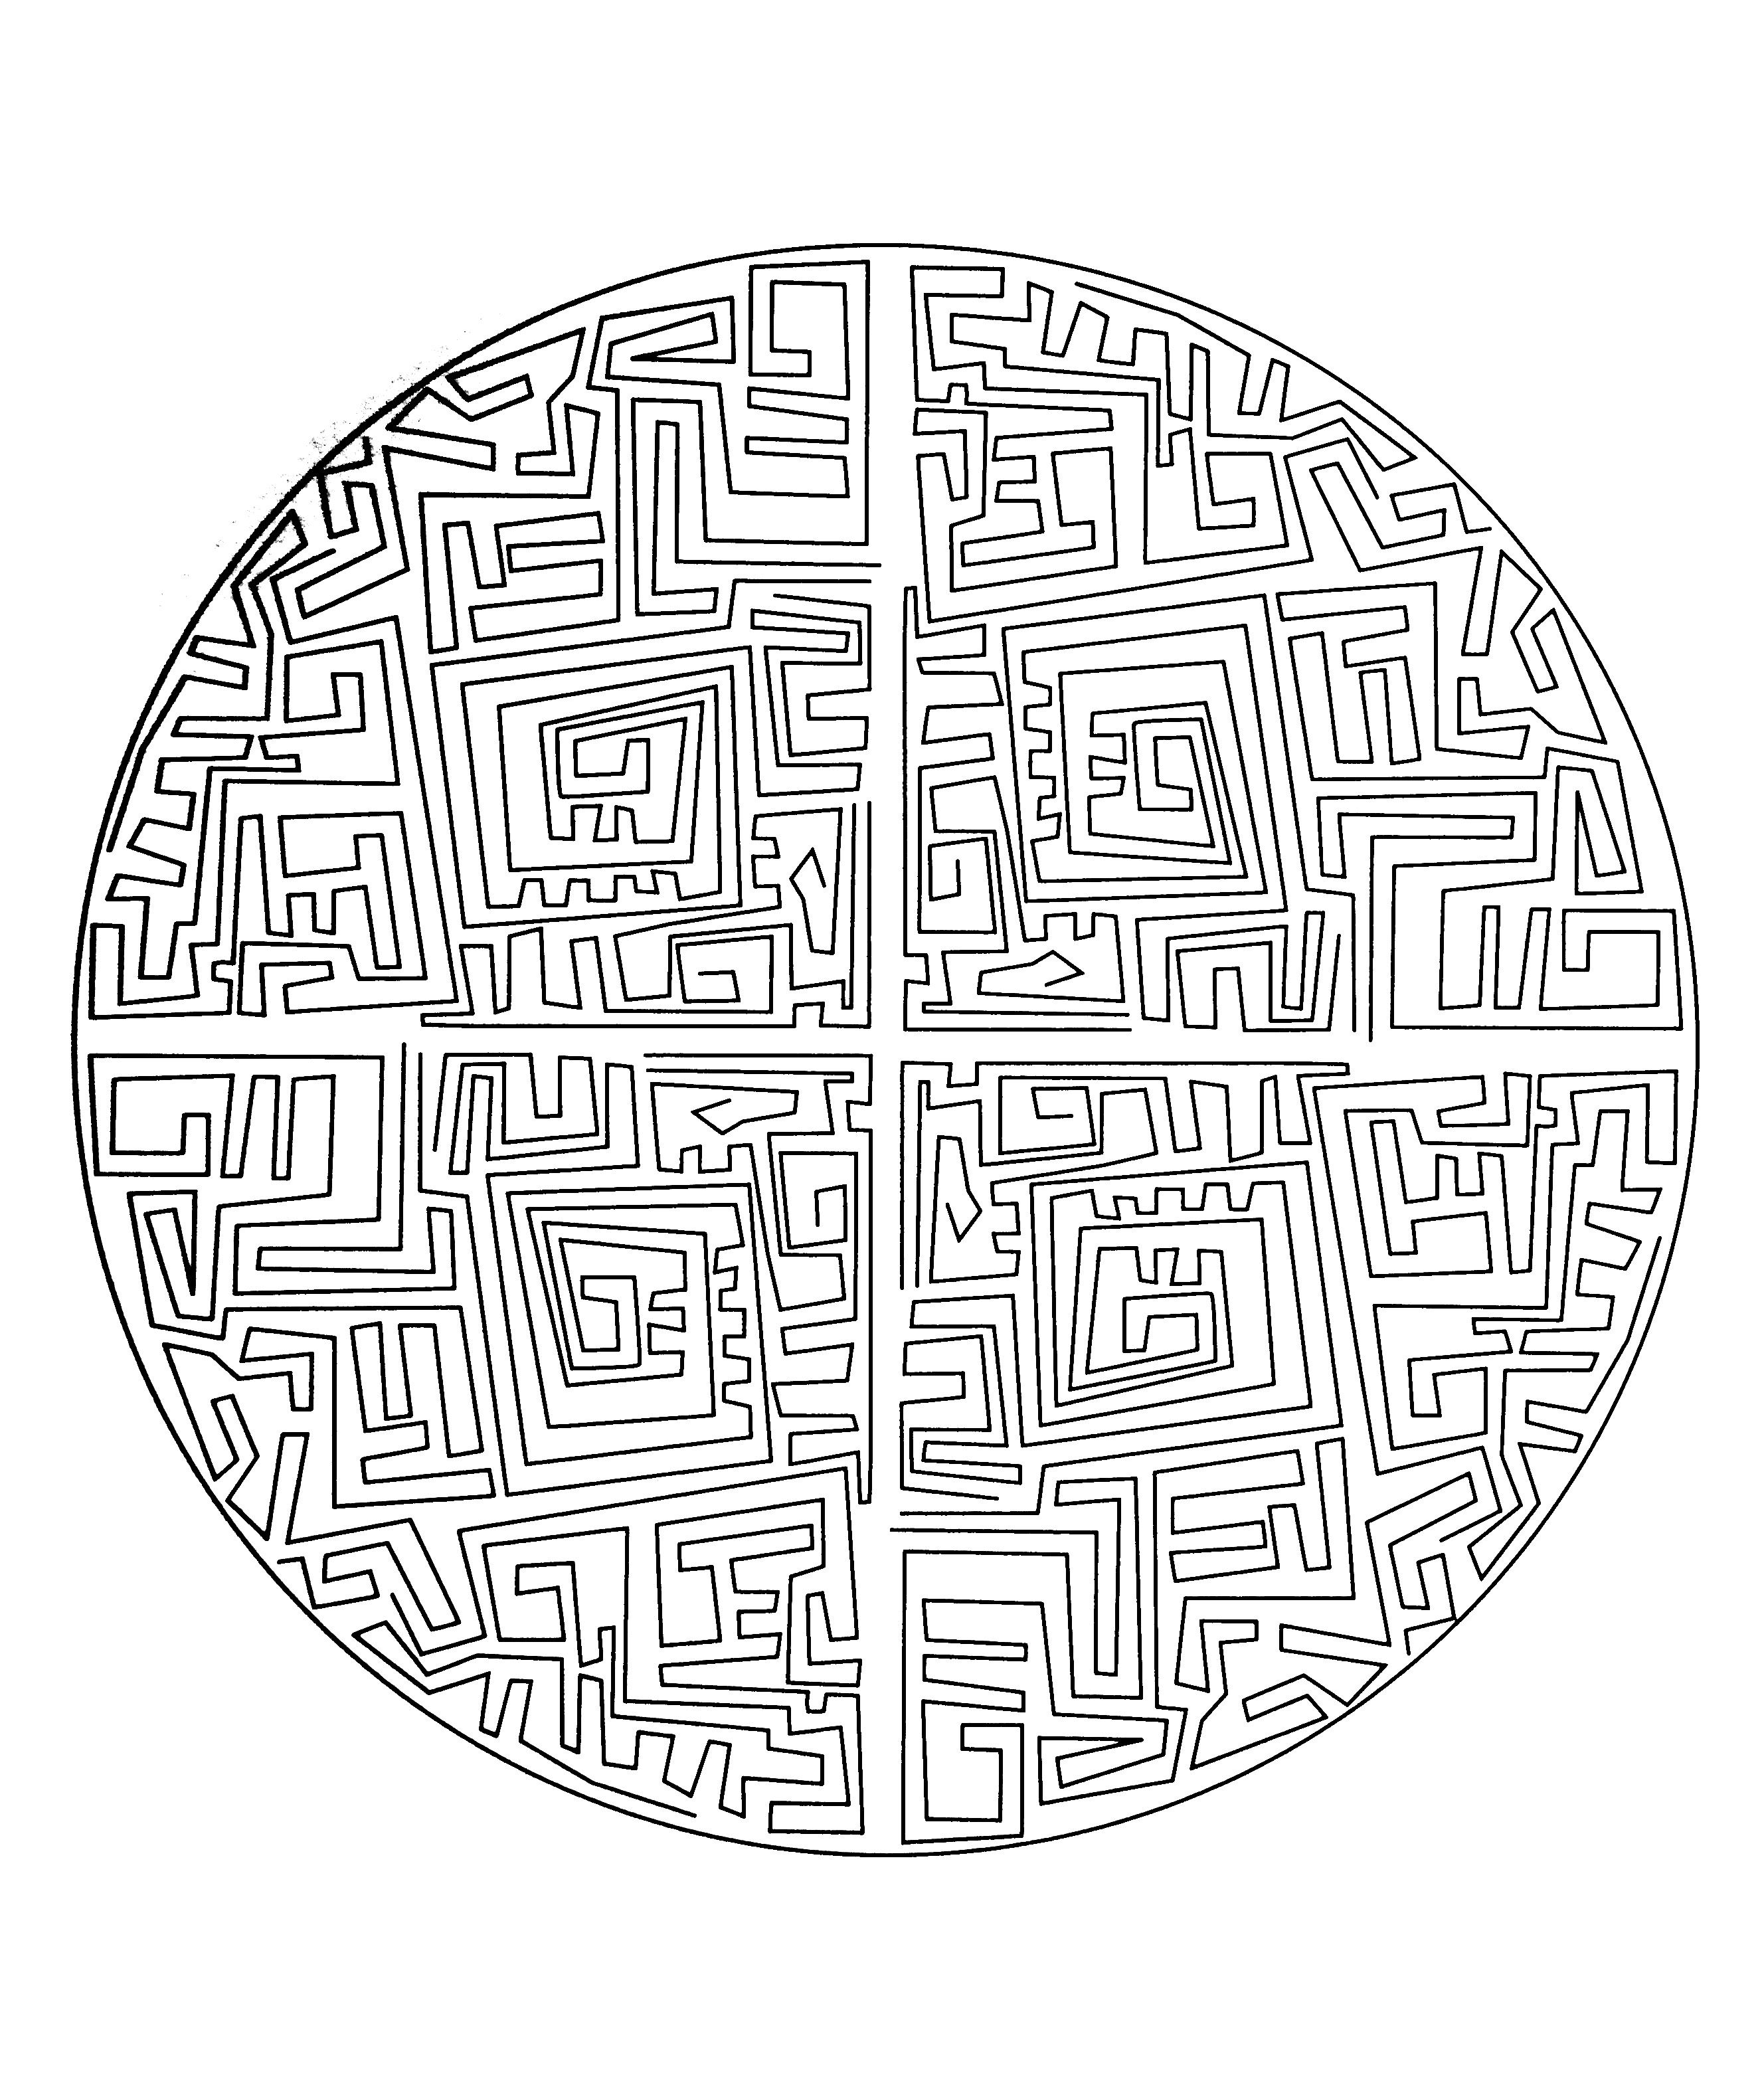 free mandala to color maze coloring pages printable and coloring book to print for free find more coloring pages online for kids and adults of free mandala - Maze Coloring Pages